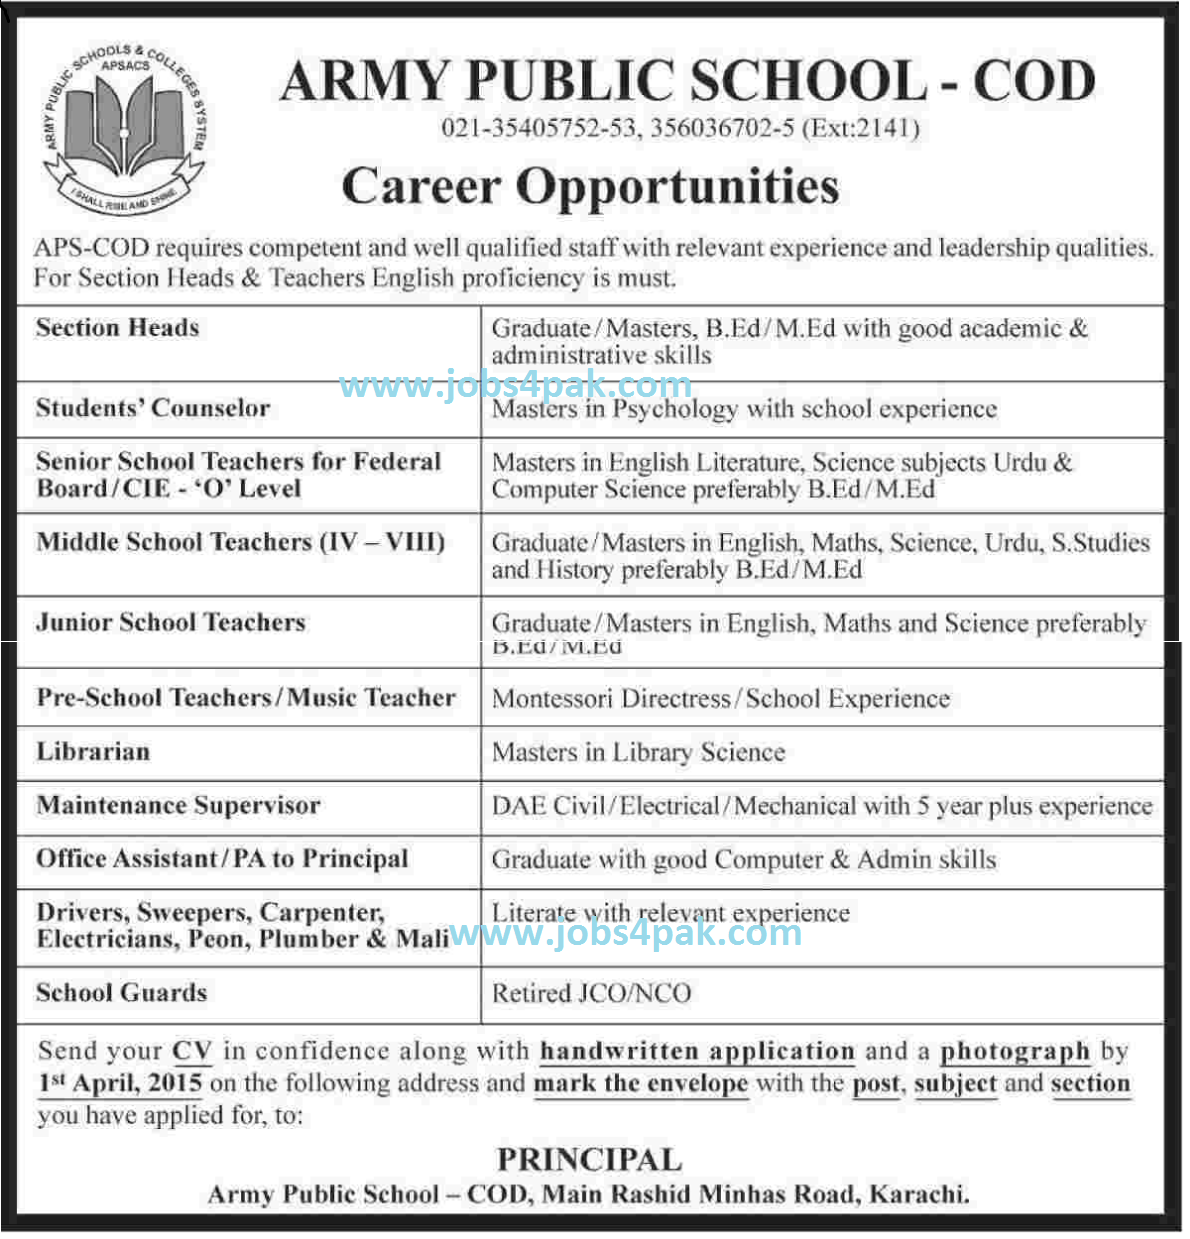 Pin by Jobs In Pakistan on Jobs4pak | Public school, Jobs in